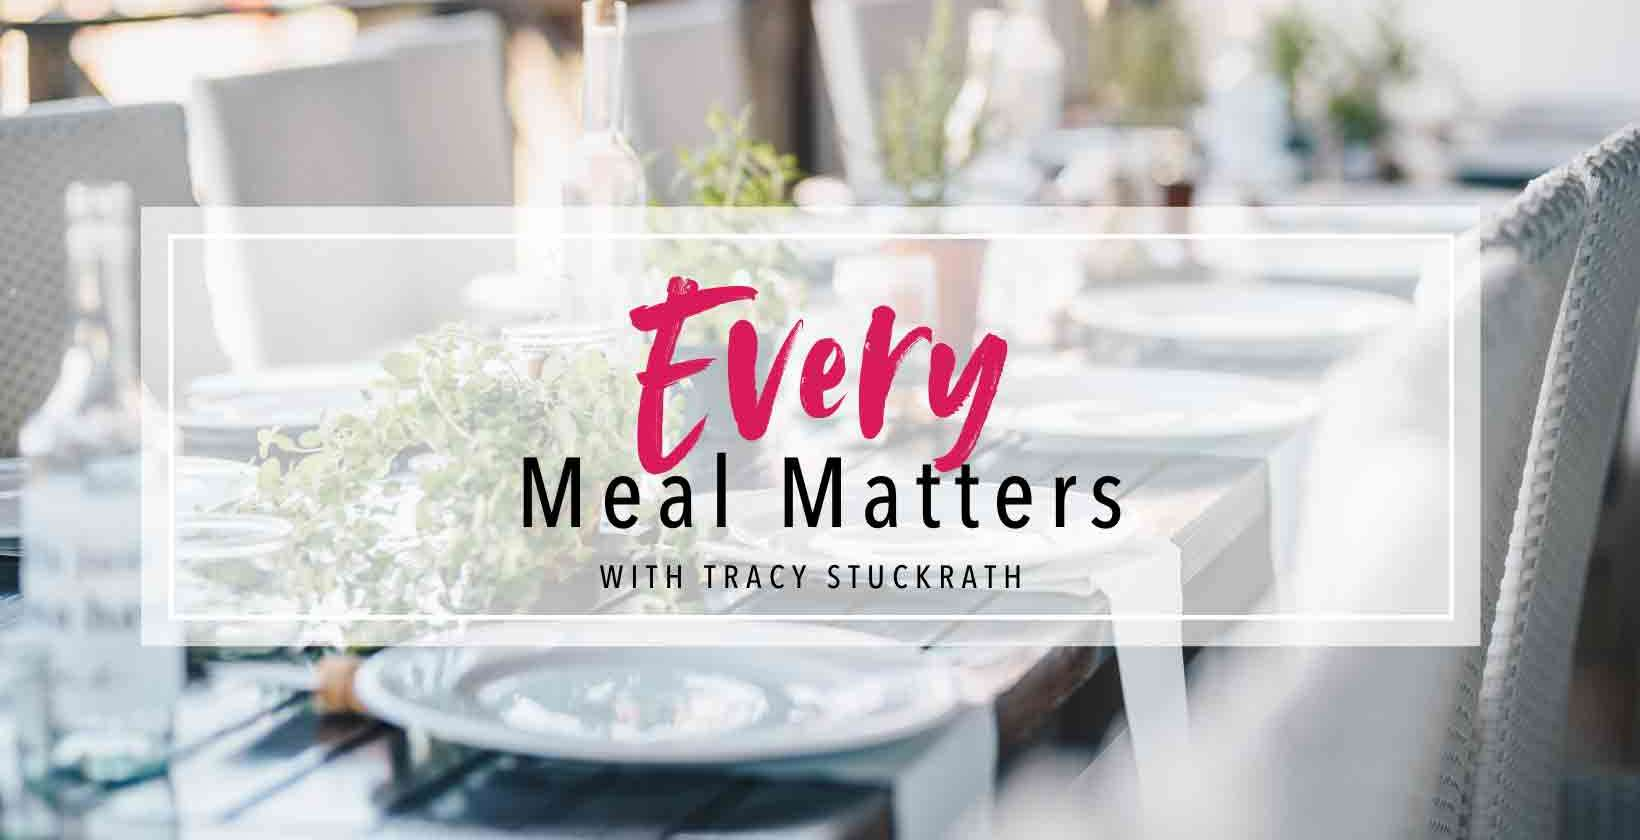 Every Meal Matters